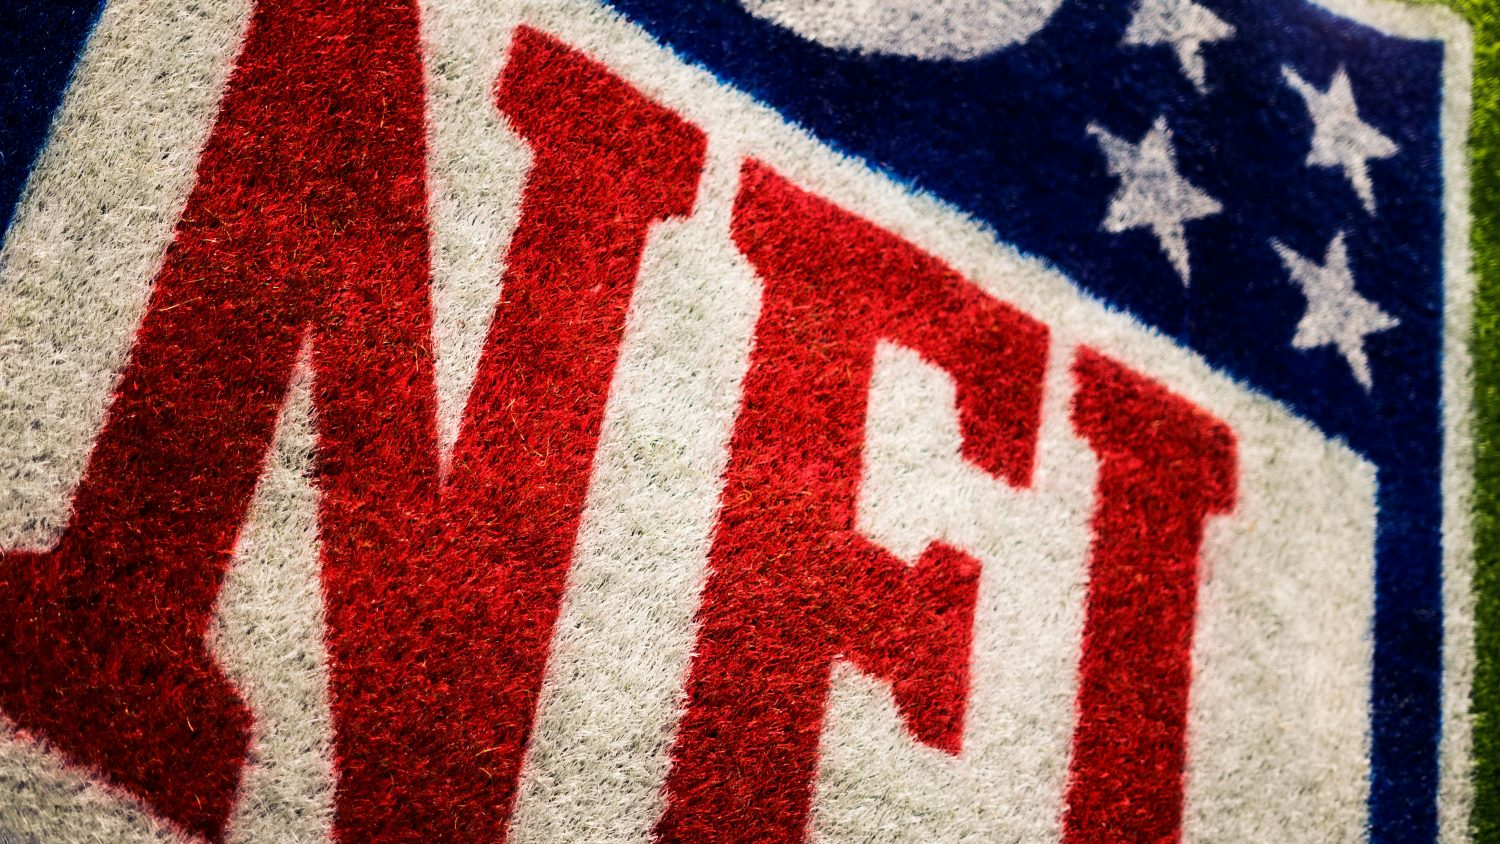 Remembering Some Of The Biggest Nfl Related Scandals In Recent History